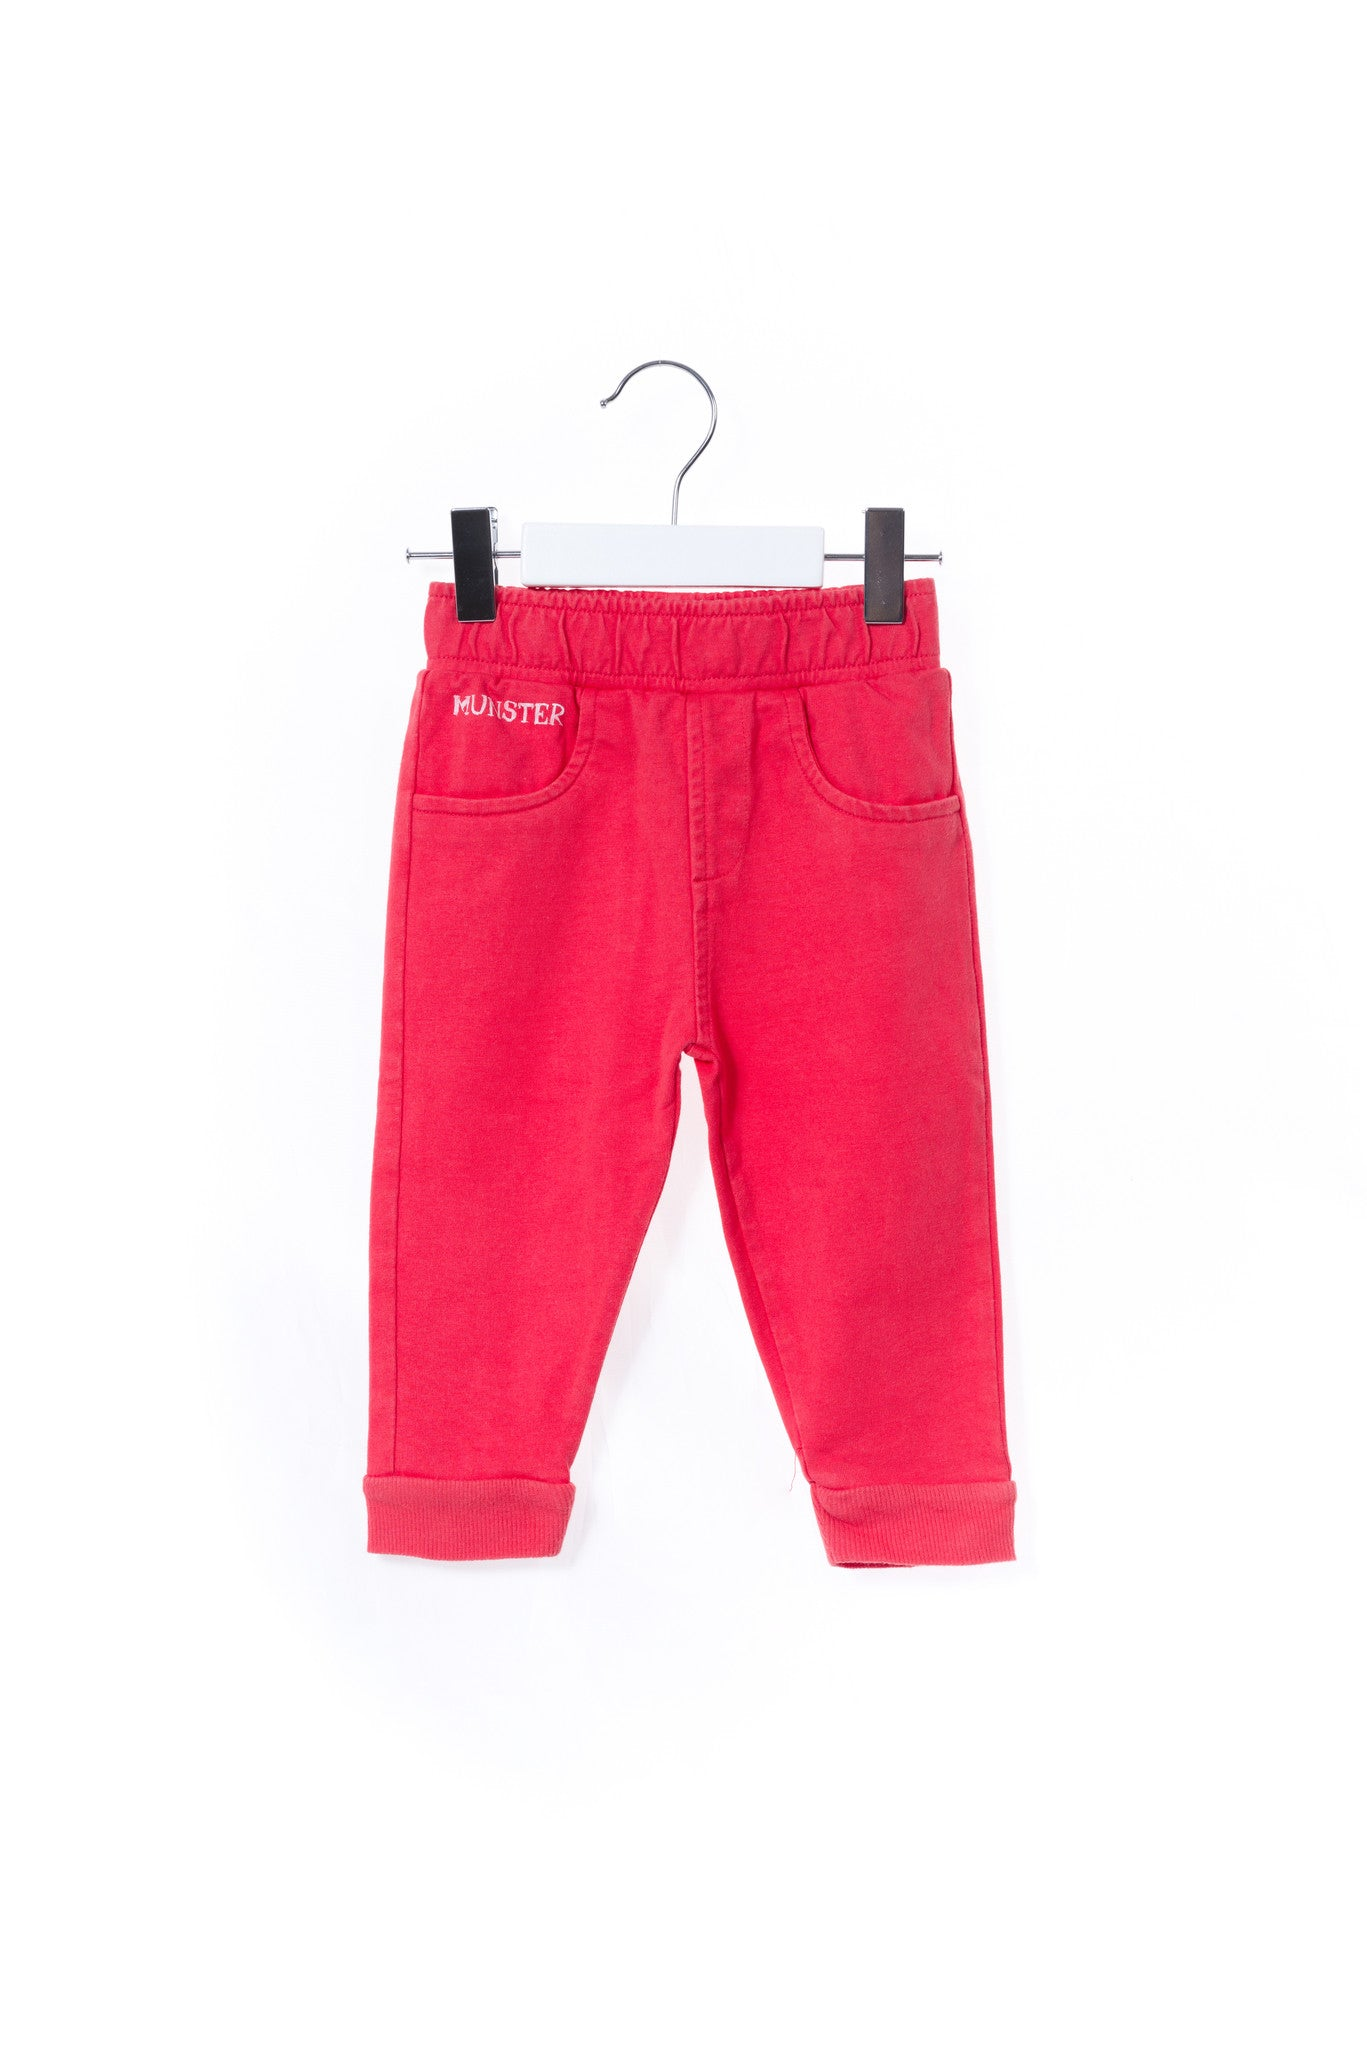 10001015 Munsterkids Baby~Pants 12-18M at Retykle